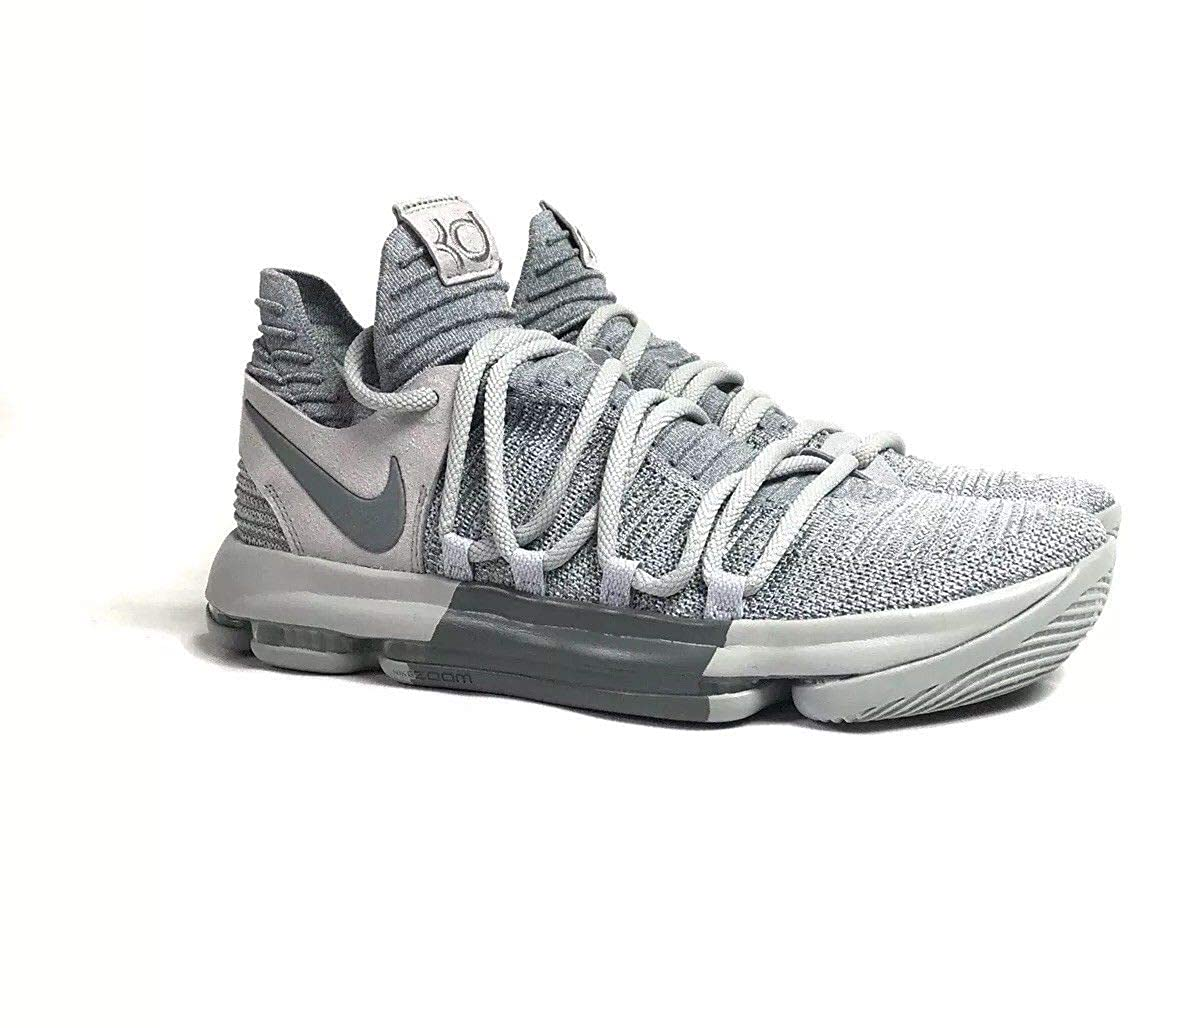 on sale d5e87 30d64 Nike Zoom KD10 Men's Basketball Shoes Wolf Grey Cool Grey 897815 007  (medium)